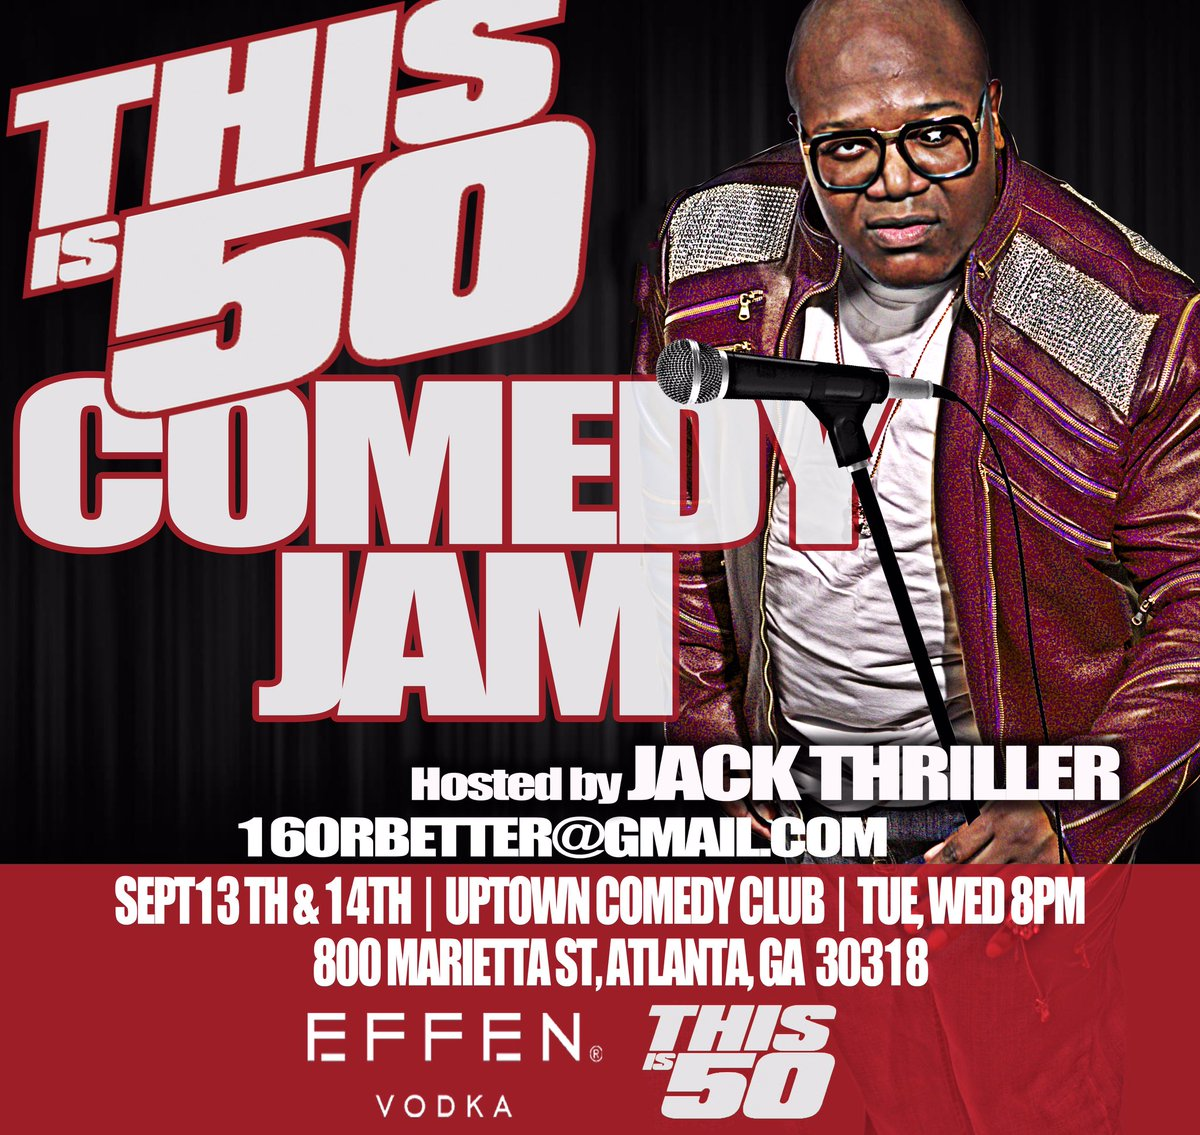 ATLANTA. tonite don't miss it @thisis50 https://t.co/KwKGMOnGX6